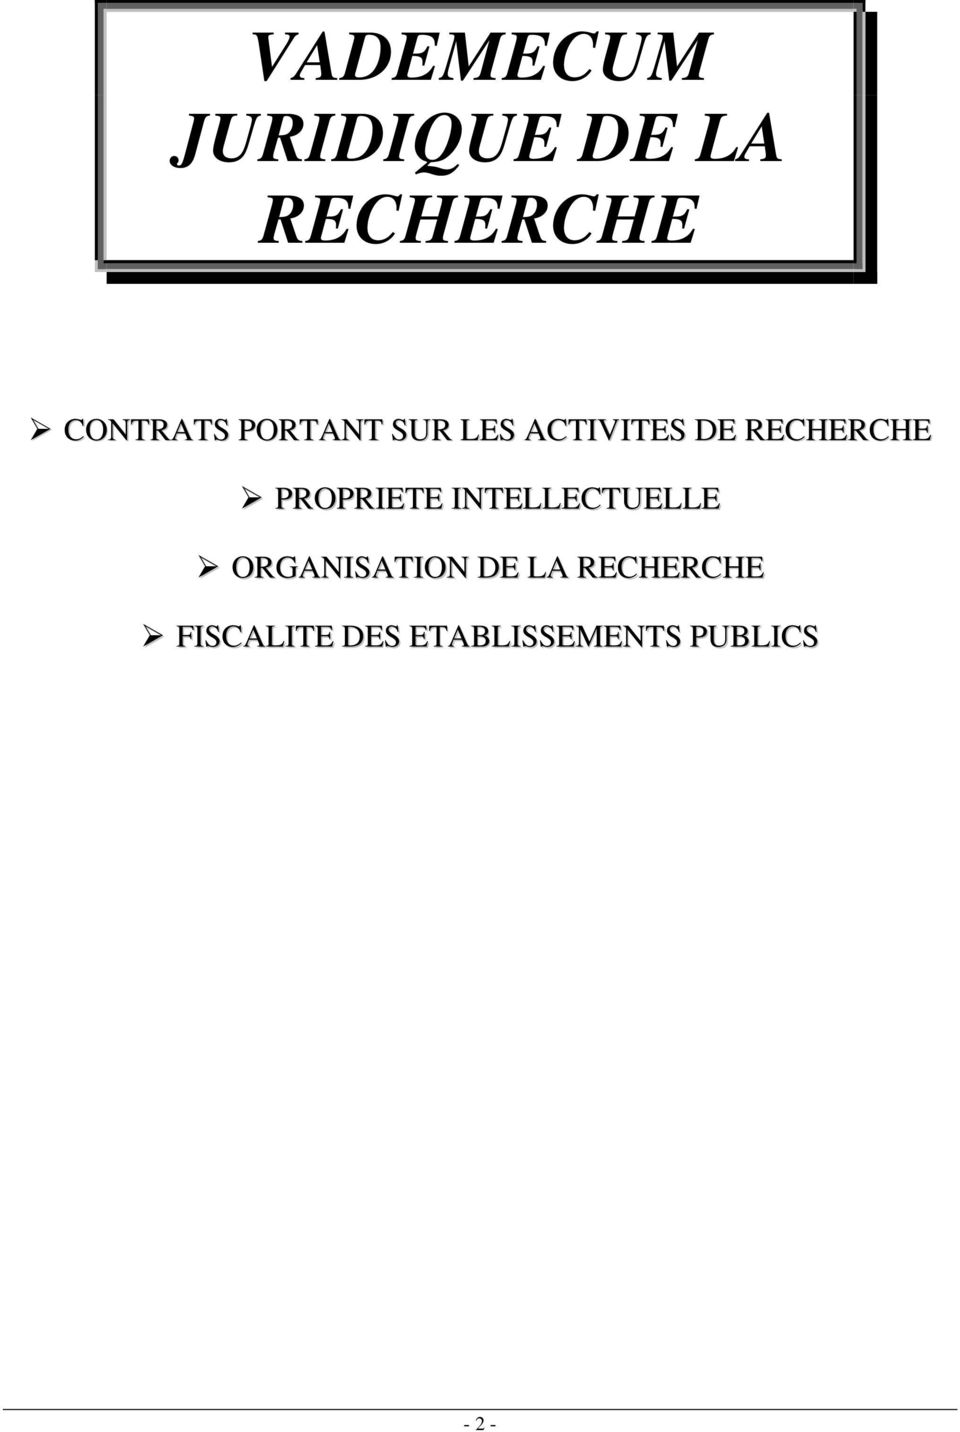 PROPRIETE INTELLECTUELLE ORGANISATION DE LA